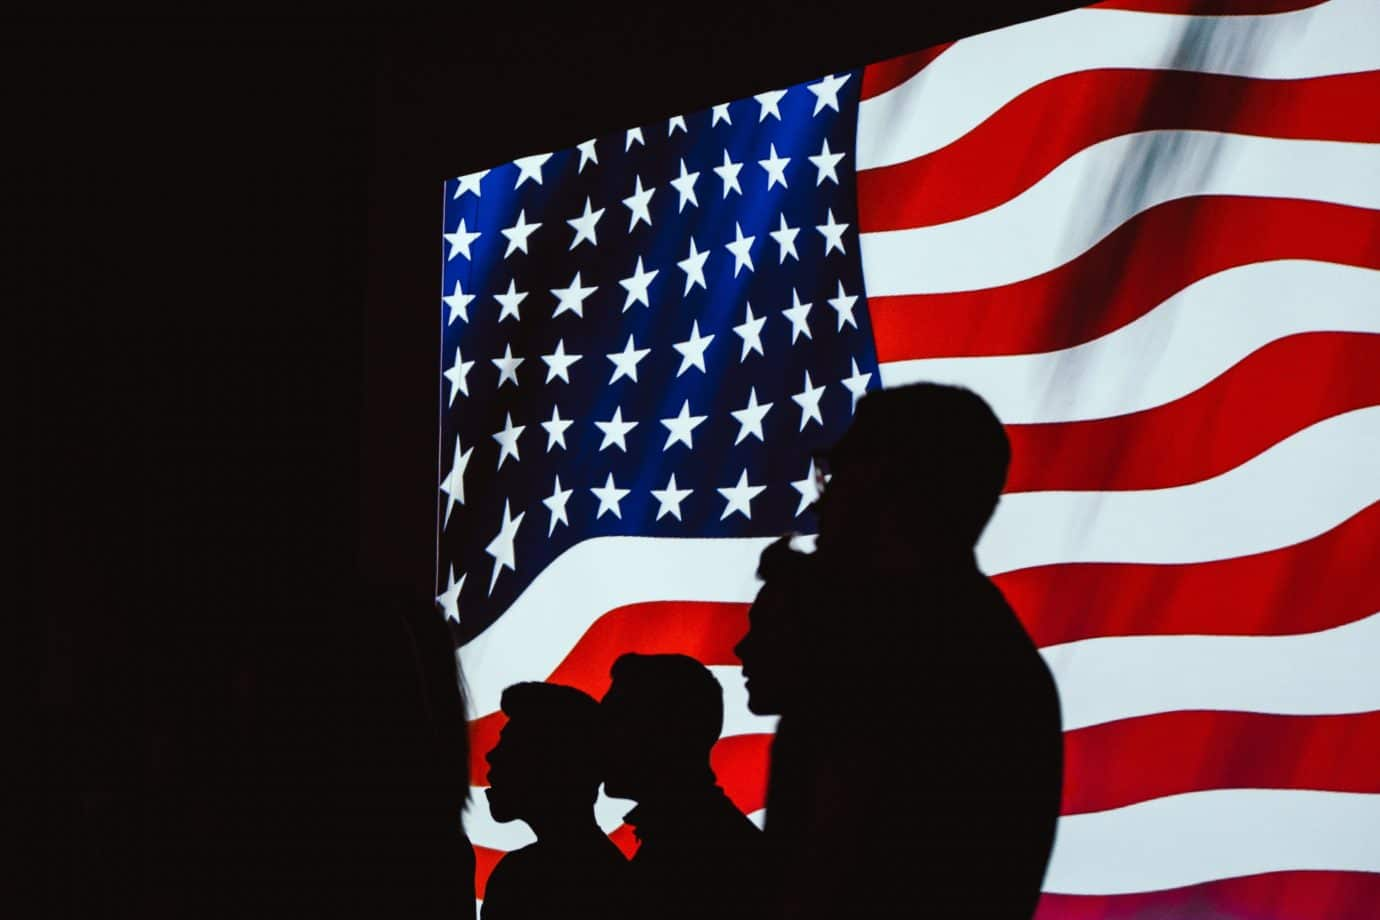 silhouette-of-people-beside-usa-flag-1046399